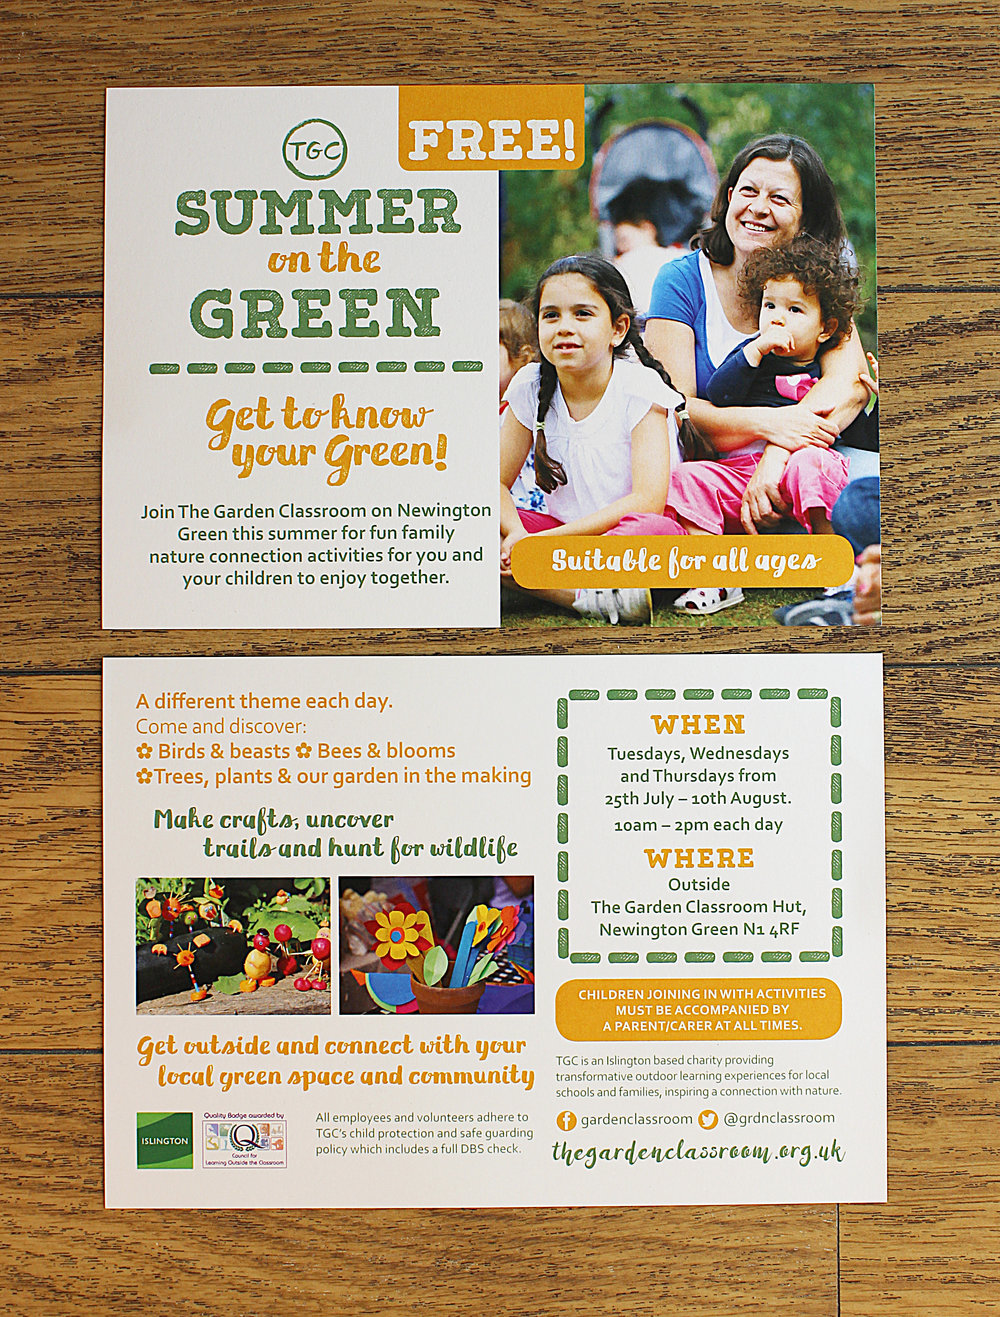 Digital printed summer on the green leaflets a5